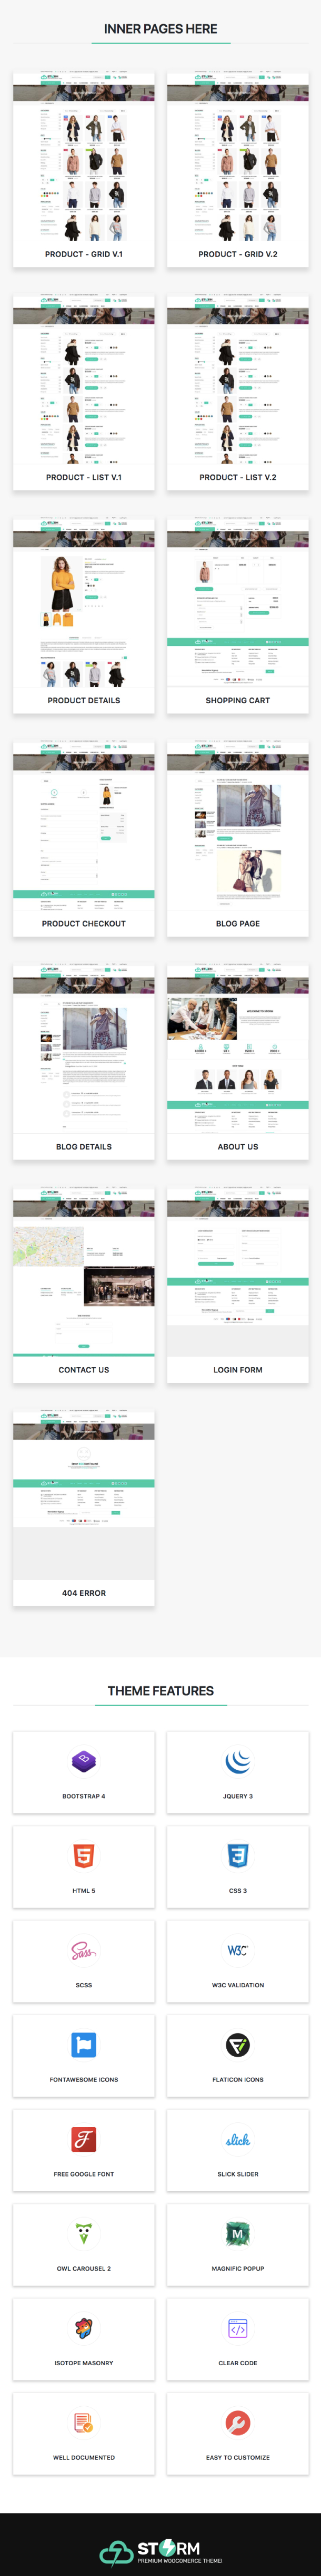 Storm - Ecommerce HTML Template - 3